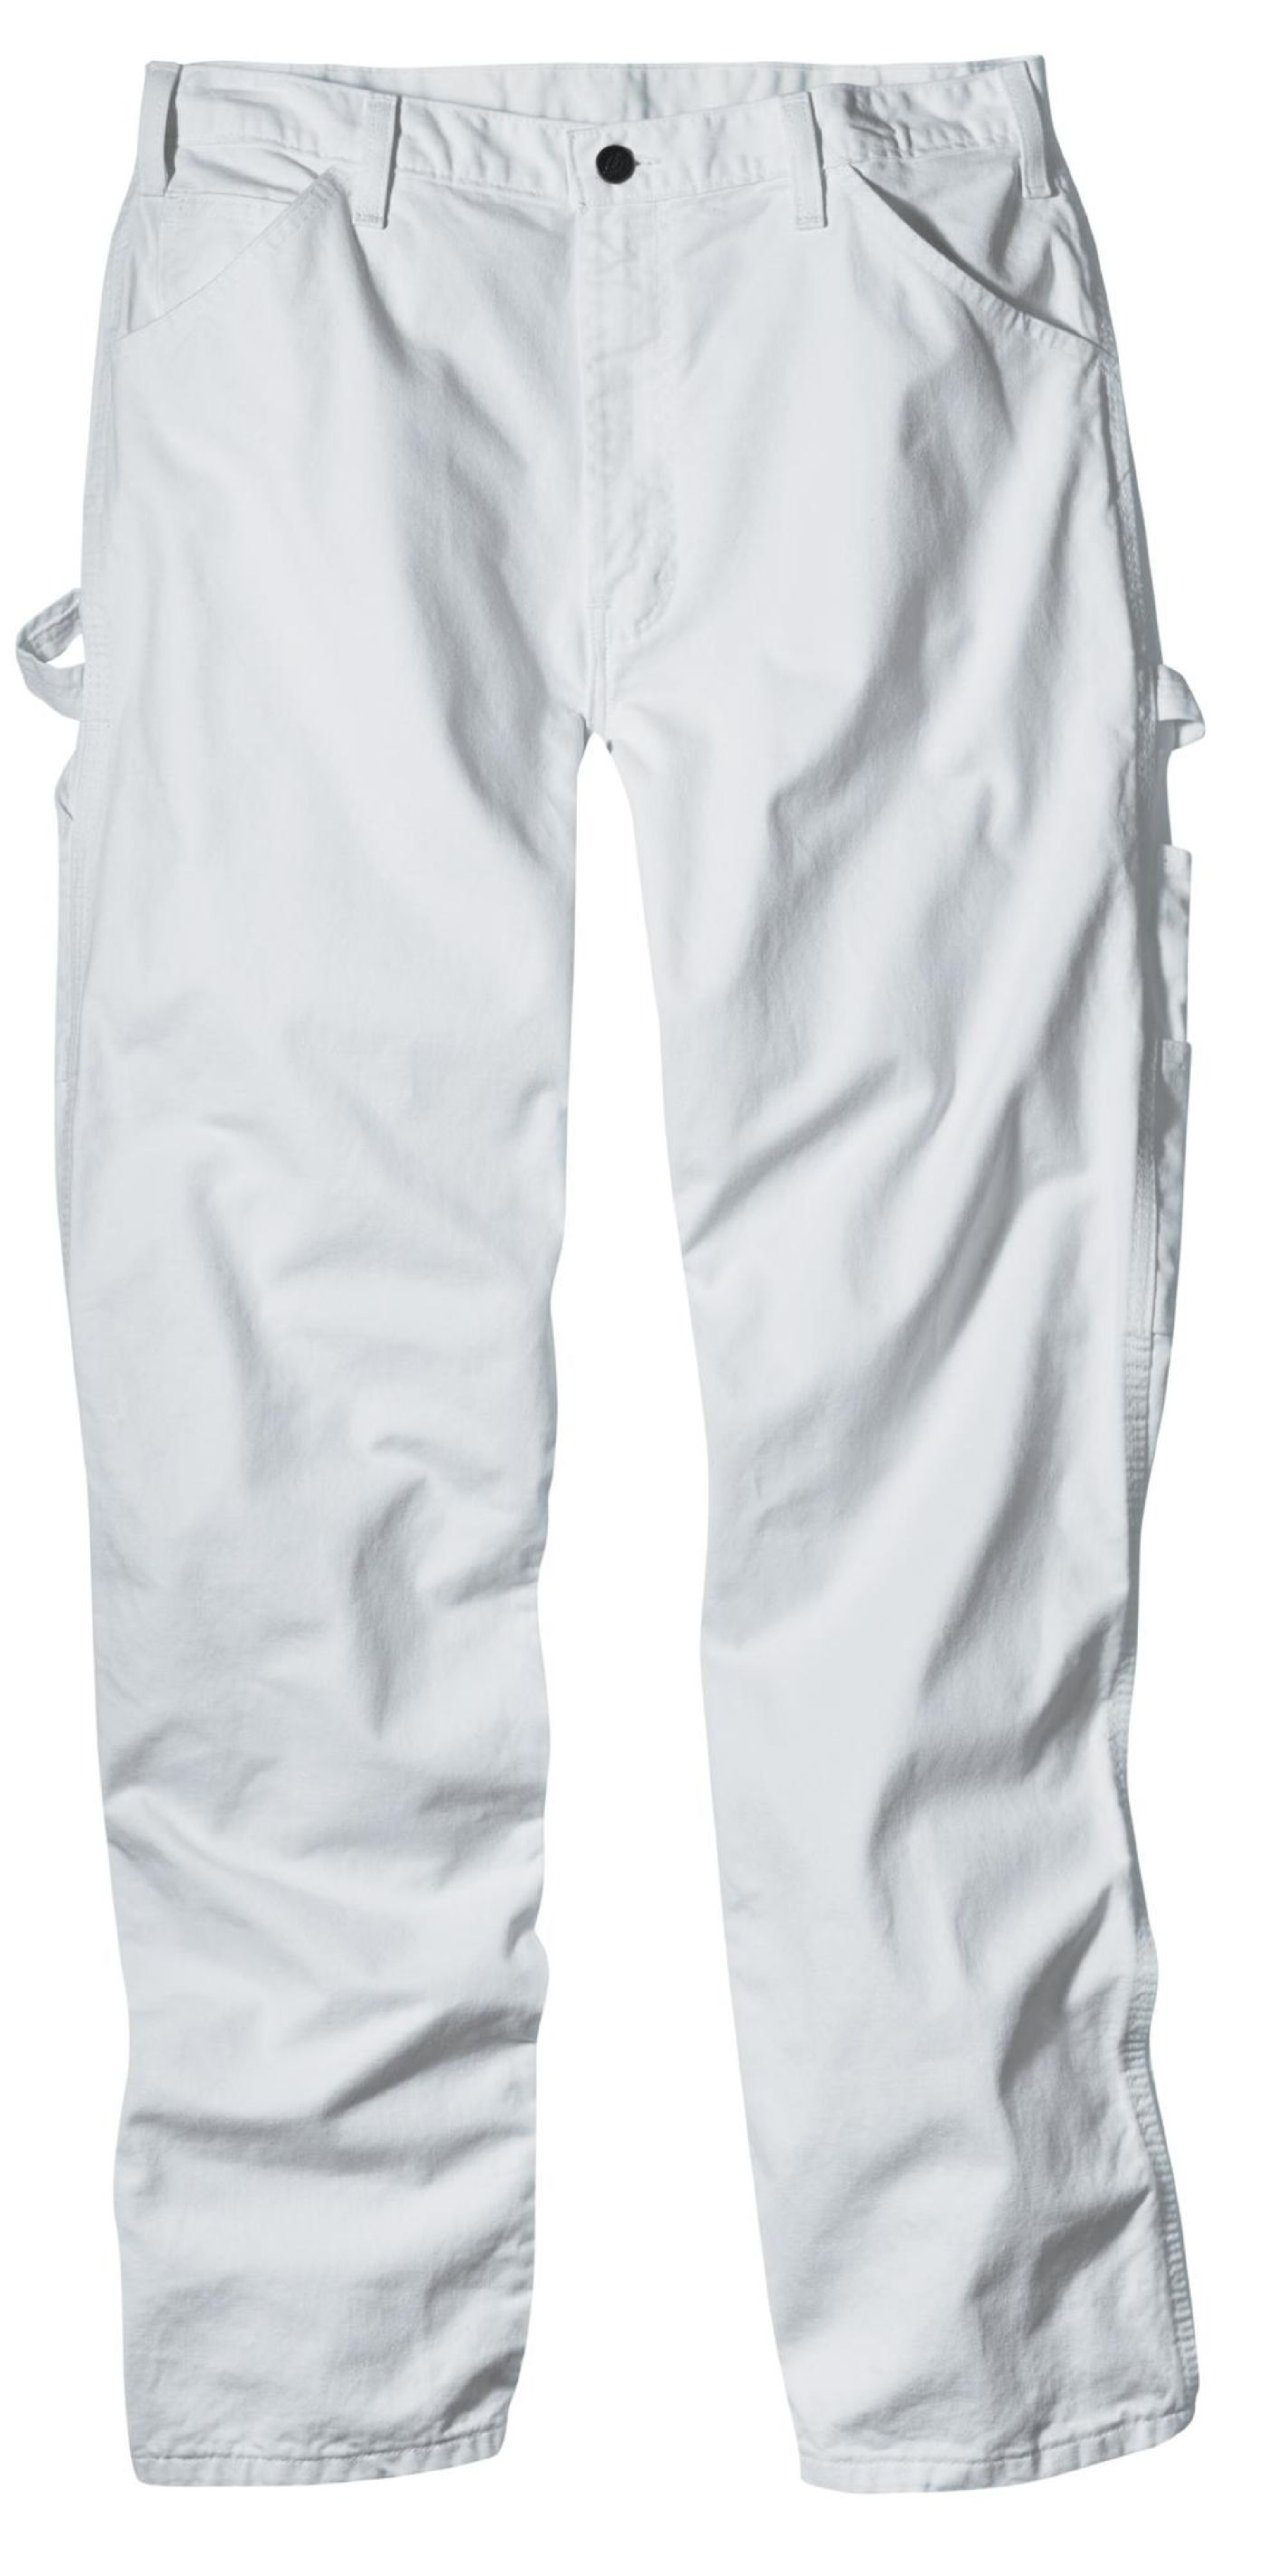 Dickies Men's Painter's Utility Pant Relaxed Fit, White, 34x30